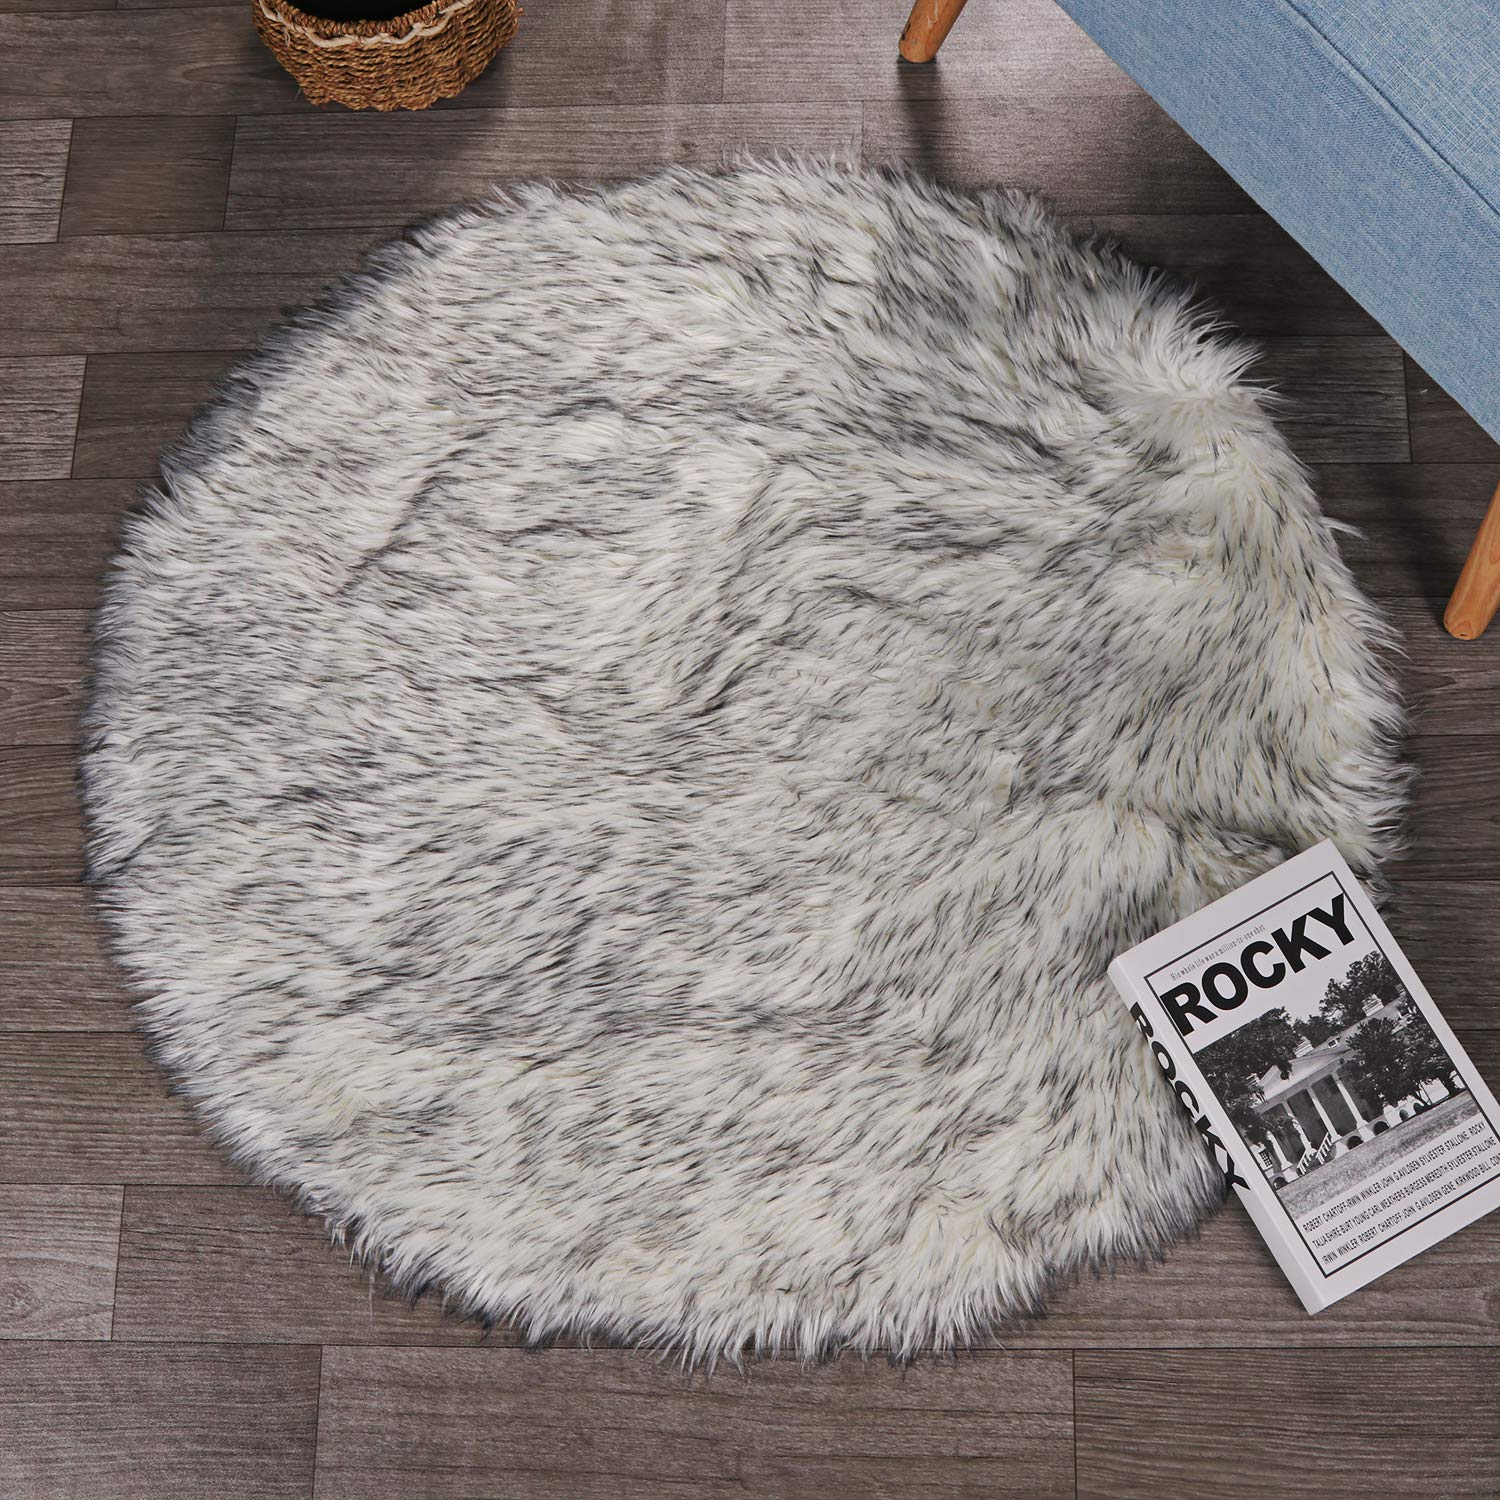 LEEVAN Super Soft Faux Fur Sheepskin Rug Shaggy Rug Round Area Rugs Floor Mat Home Decorator Carpets Kids Play Rug White and Black,4 Diameter